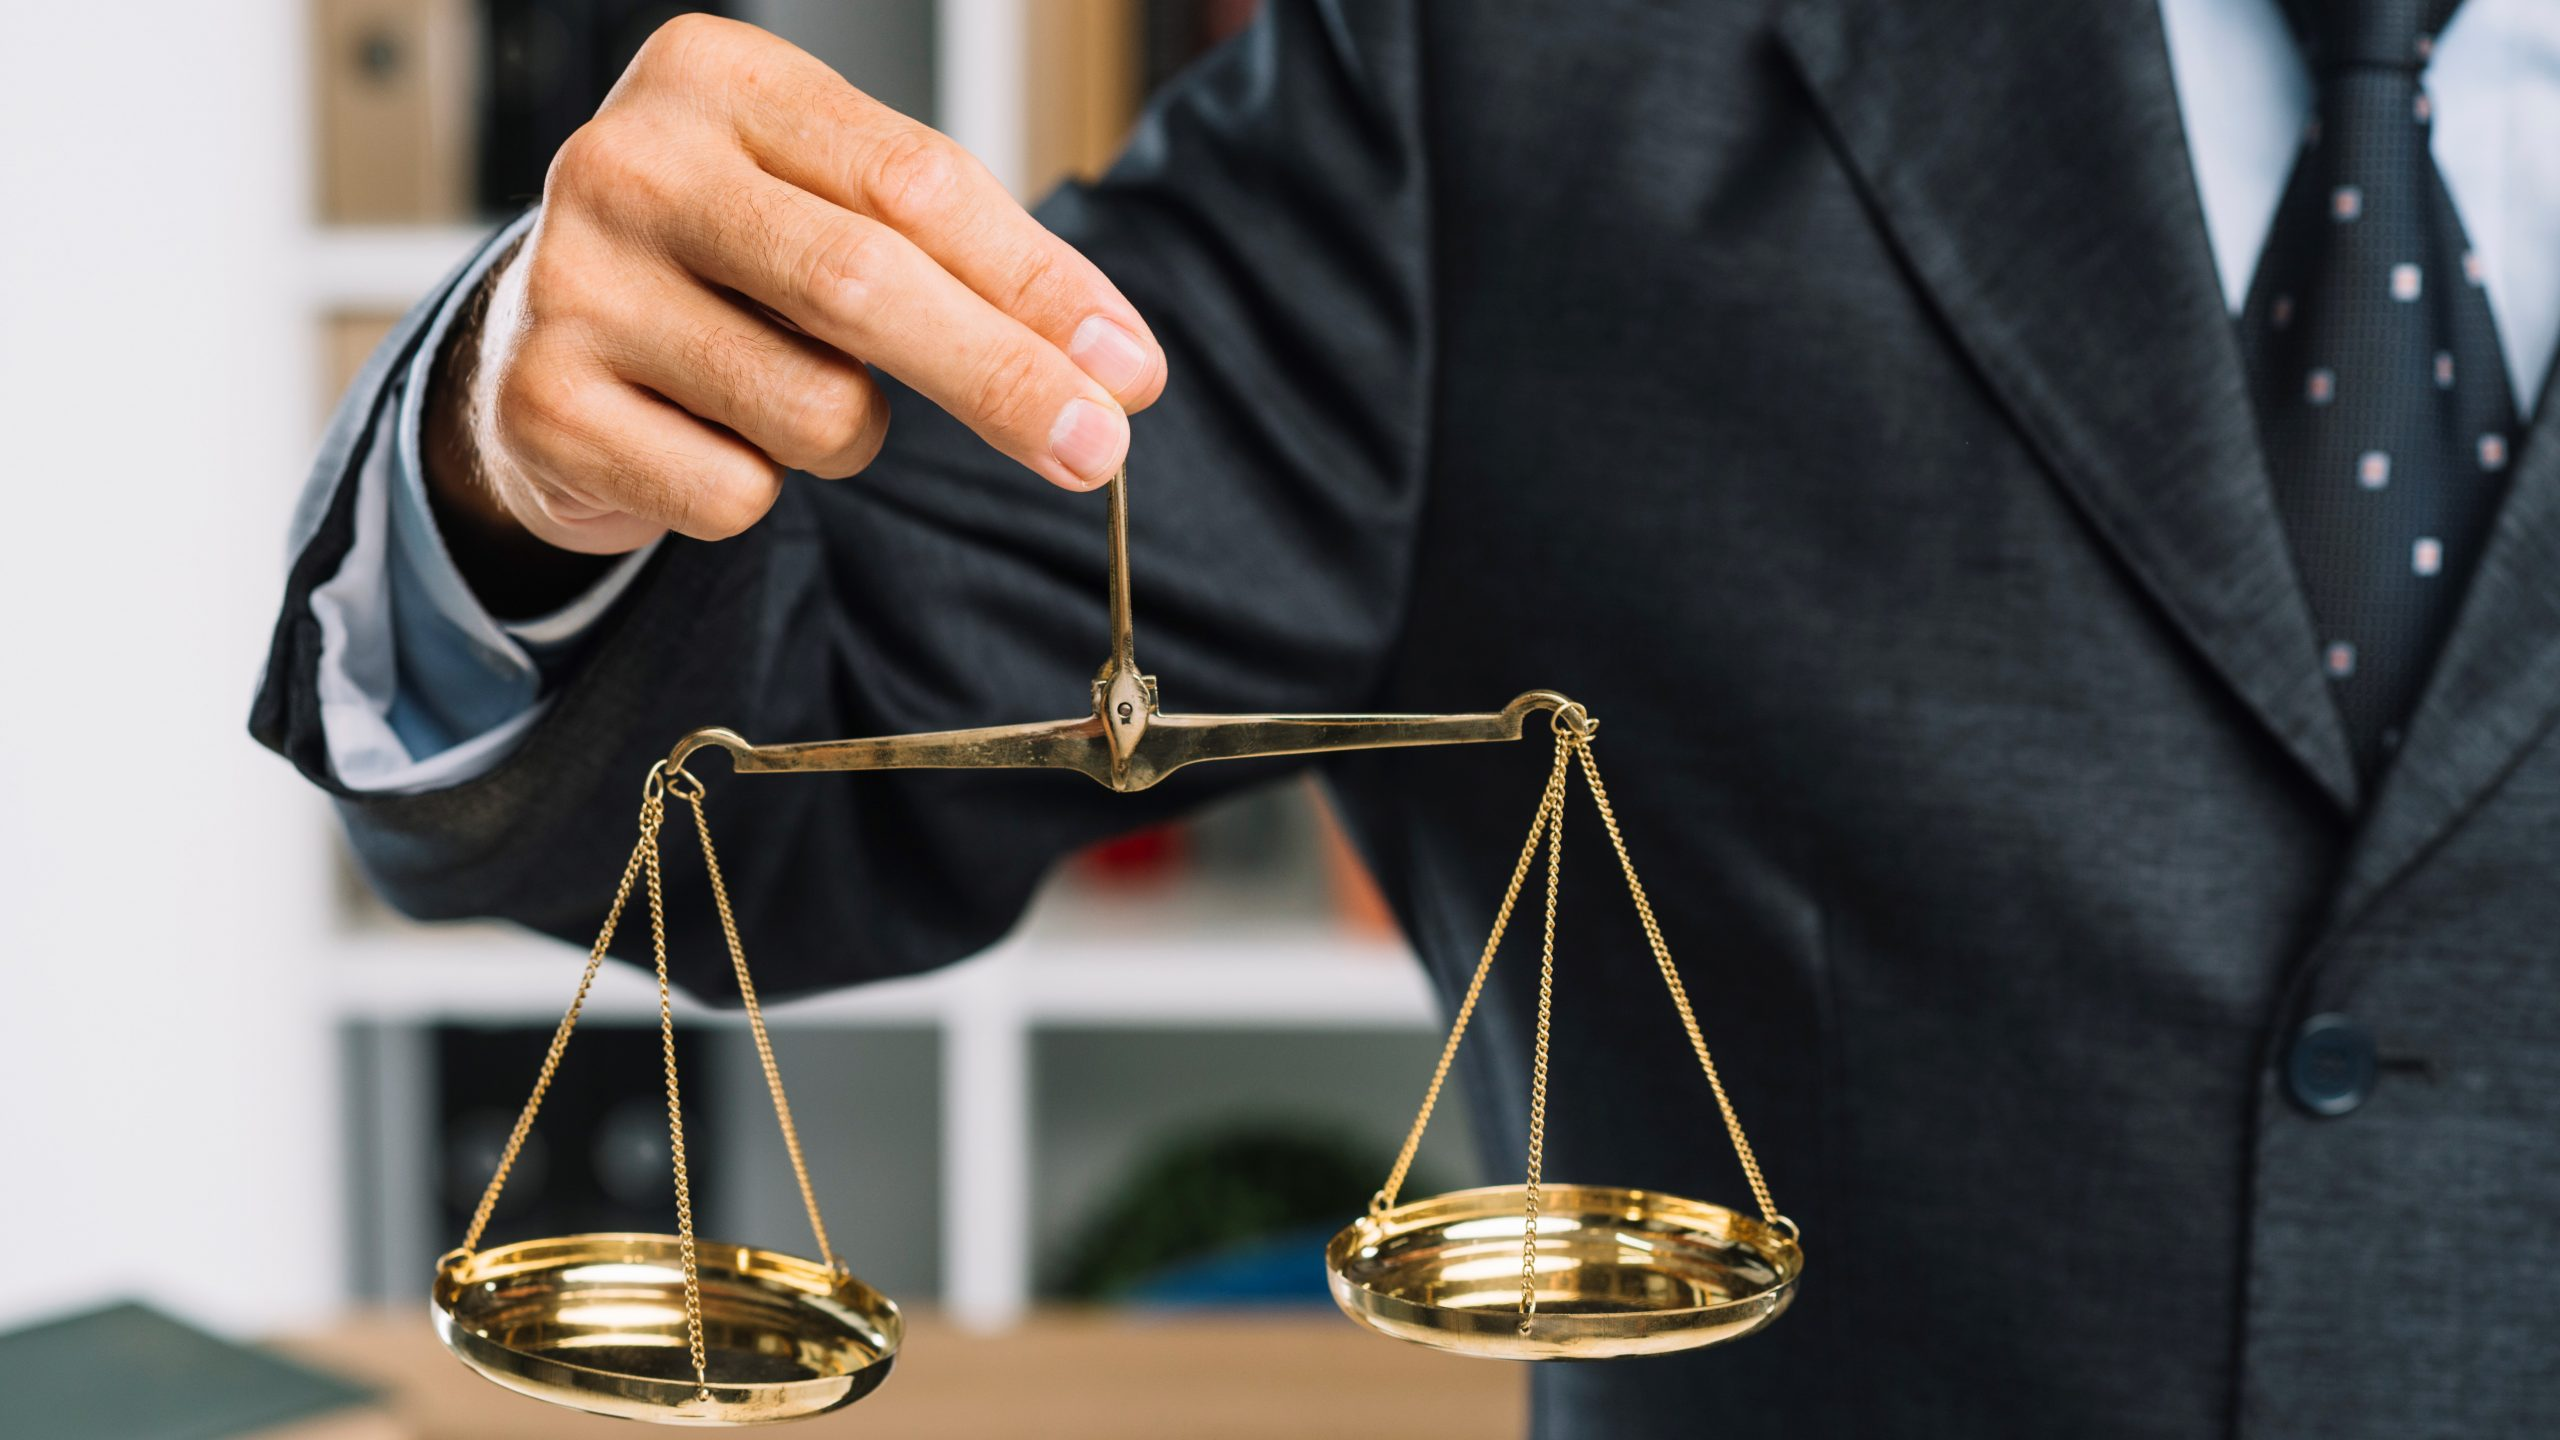 close-up-man-holding-golden-scales-justice-hand